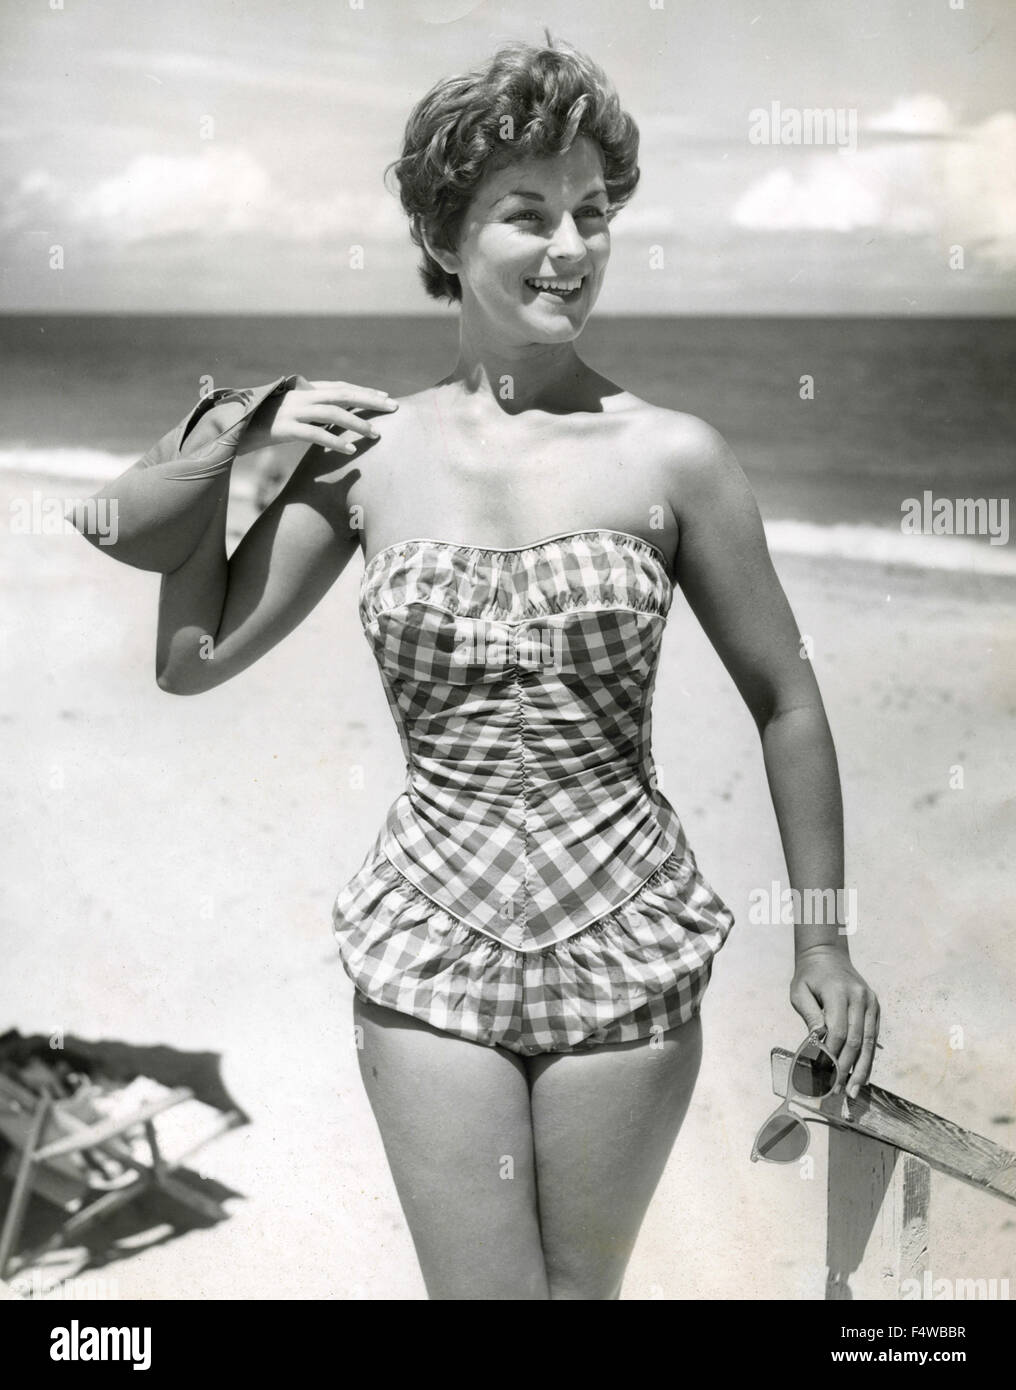 A model presents a swimsuit 50s - Stock Image